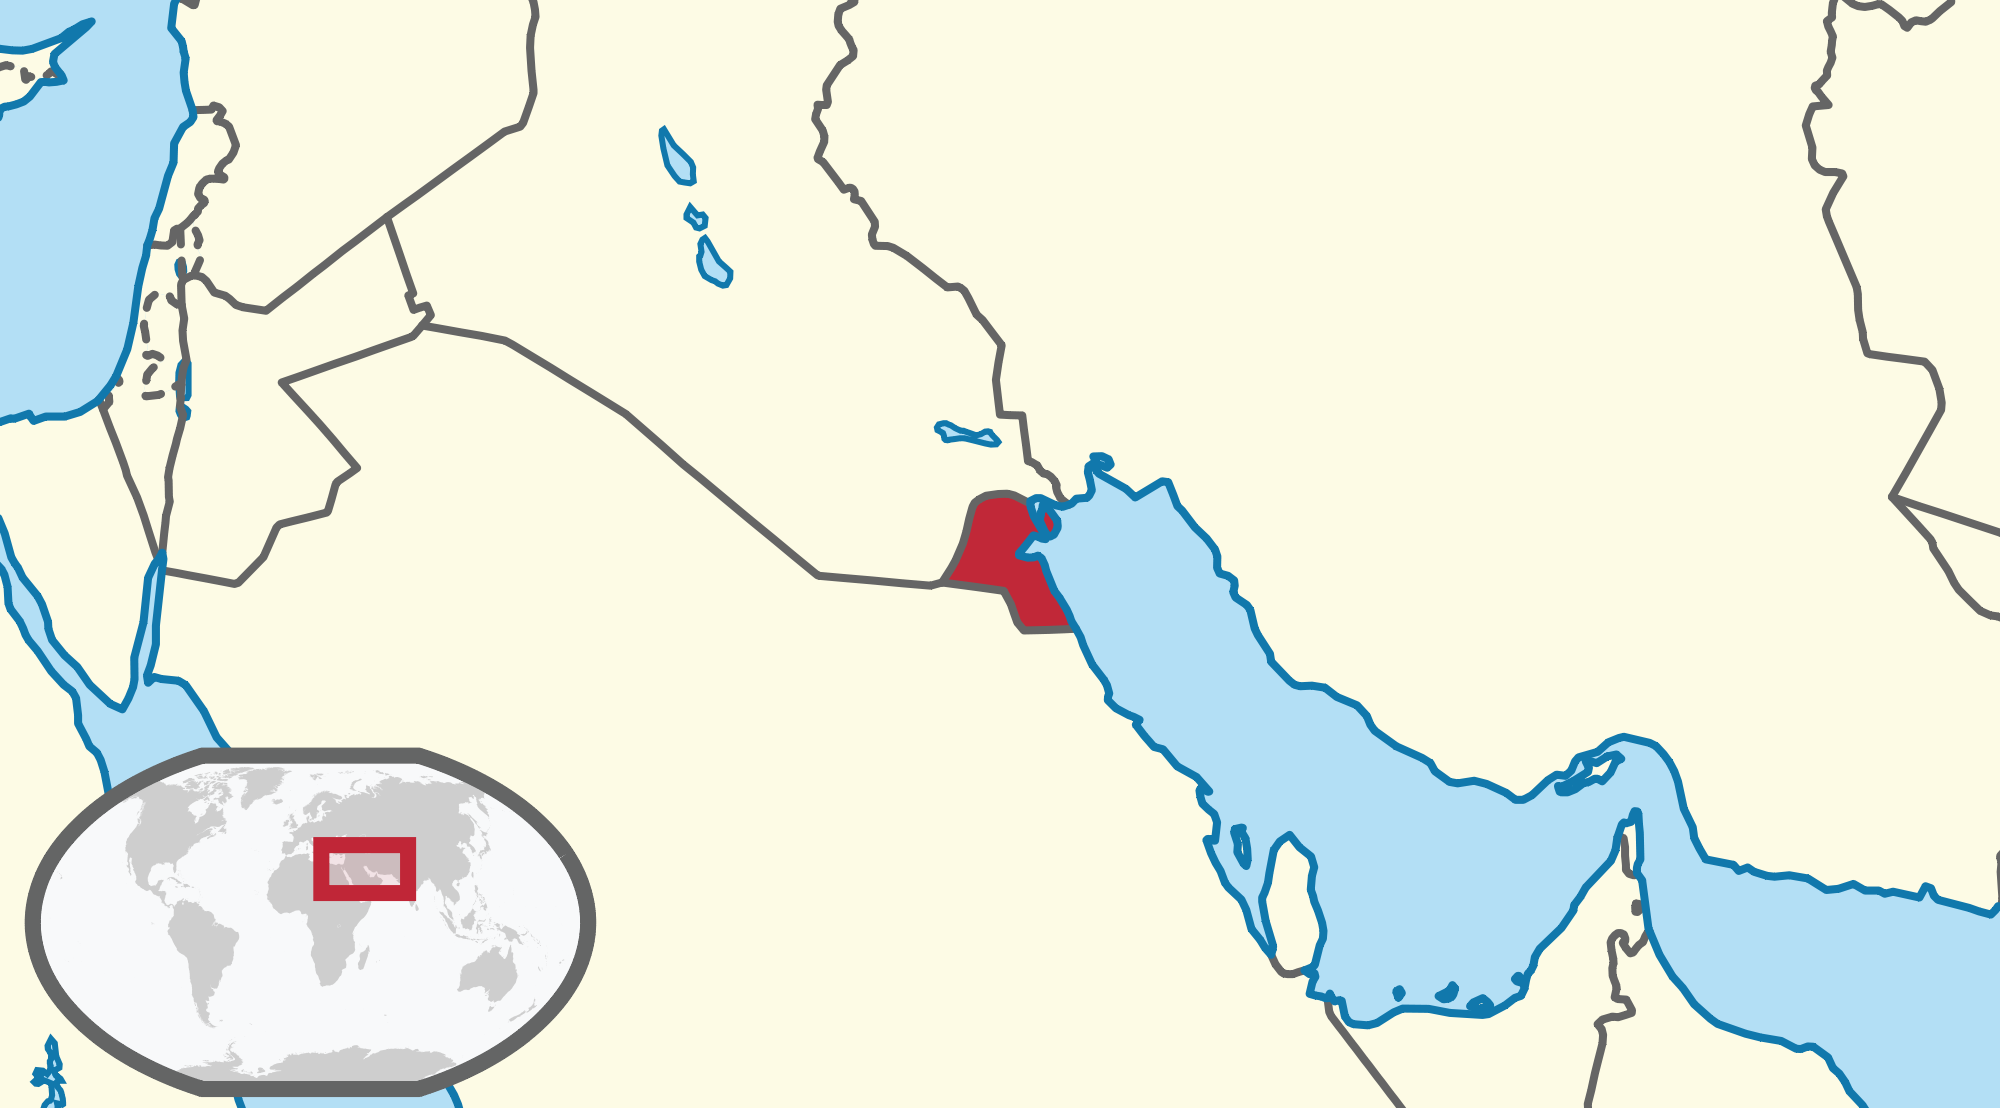 Location of the Kuwait in the World Map